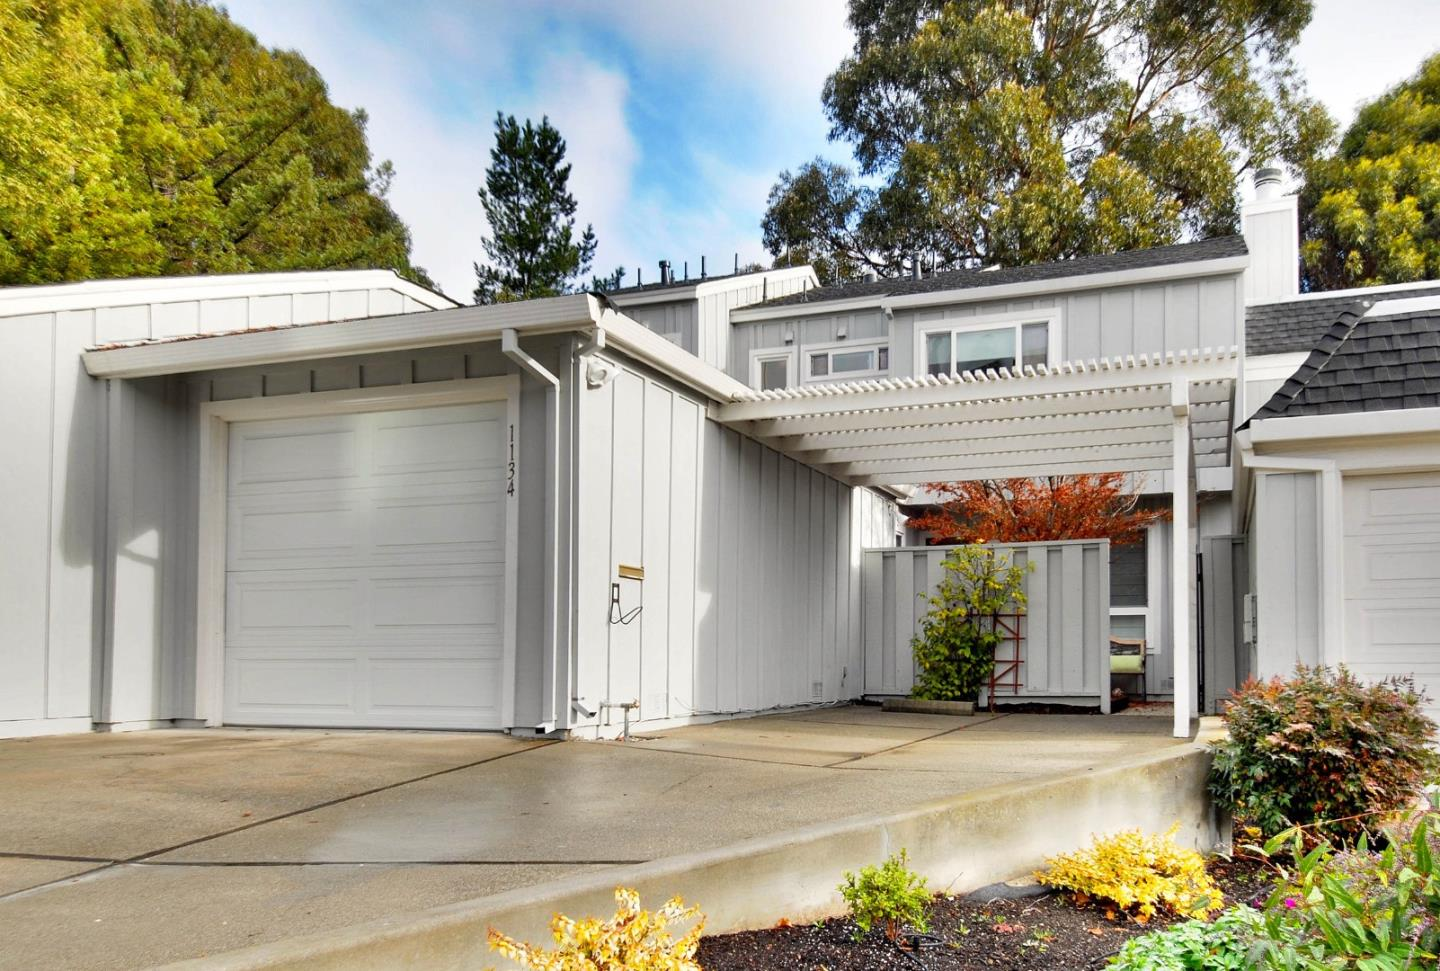 Townhouse for Sale at 1134 Continentals Way 1134 Continentals Way Belmont, California 94002 United States